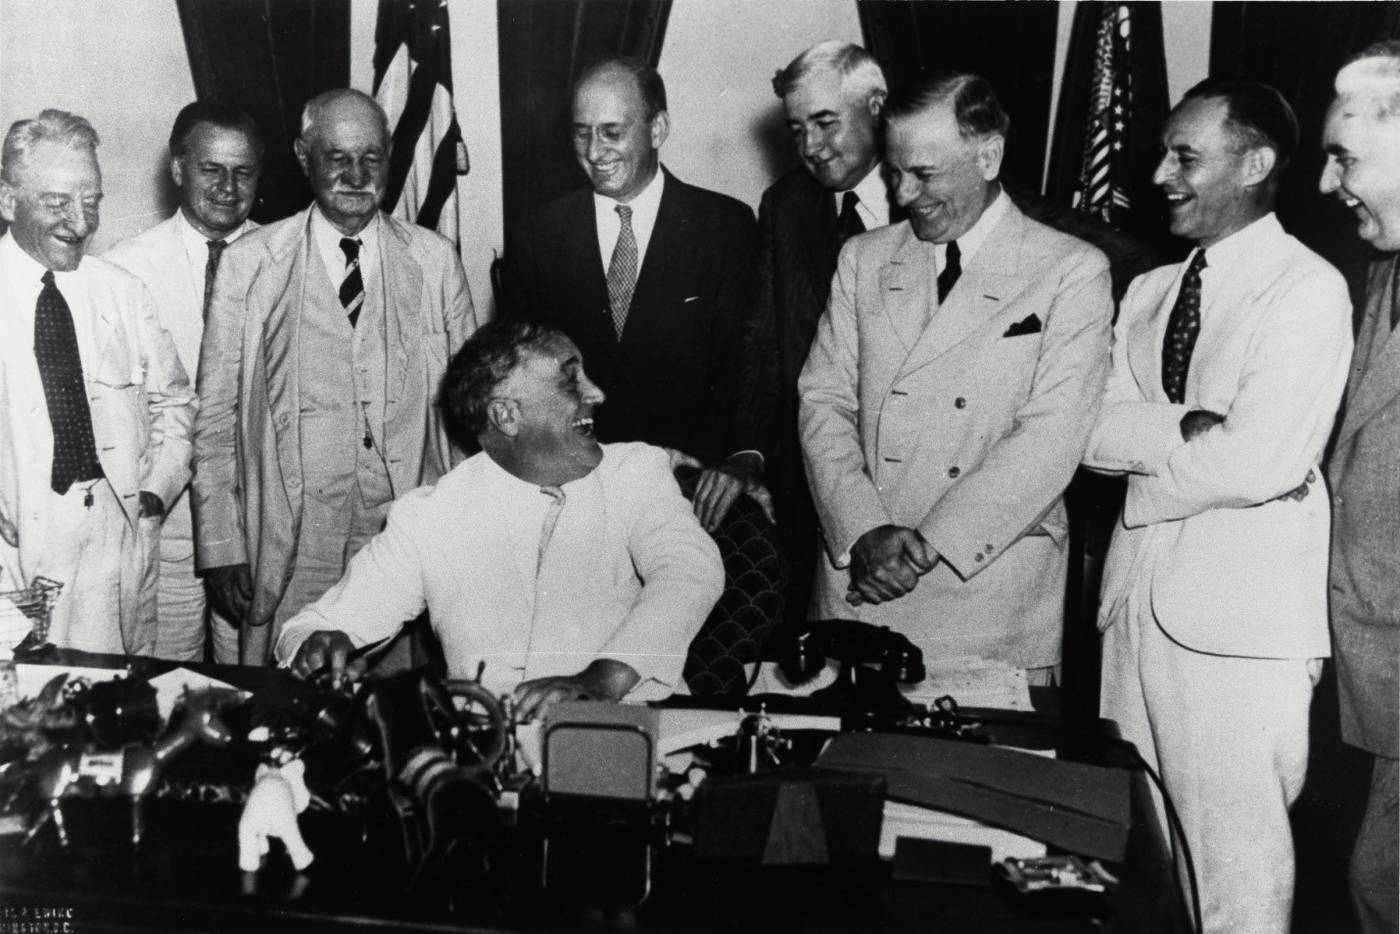 U.S. president Franklin D. Roosevelt with colleagues